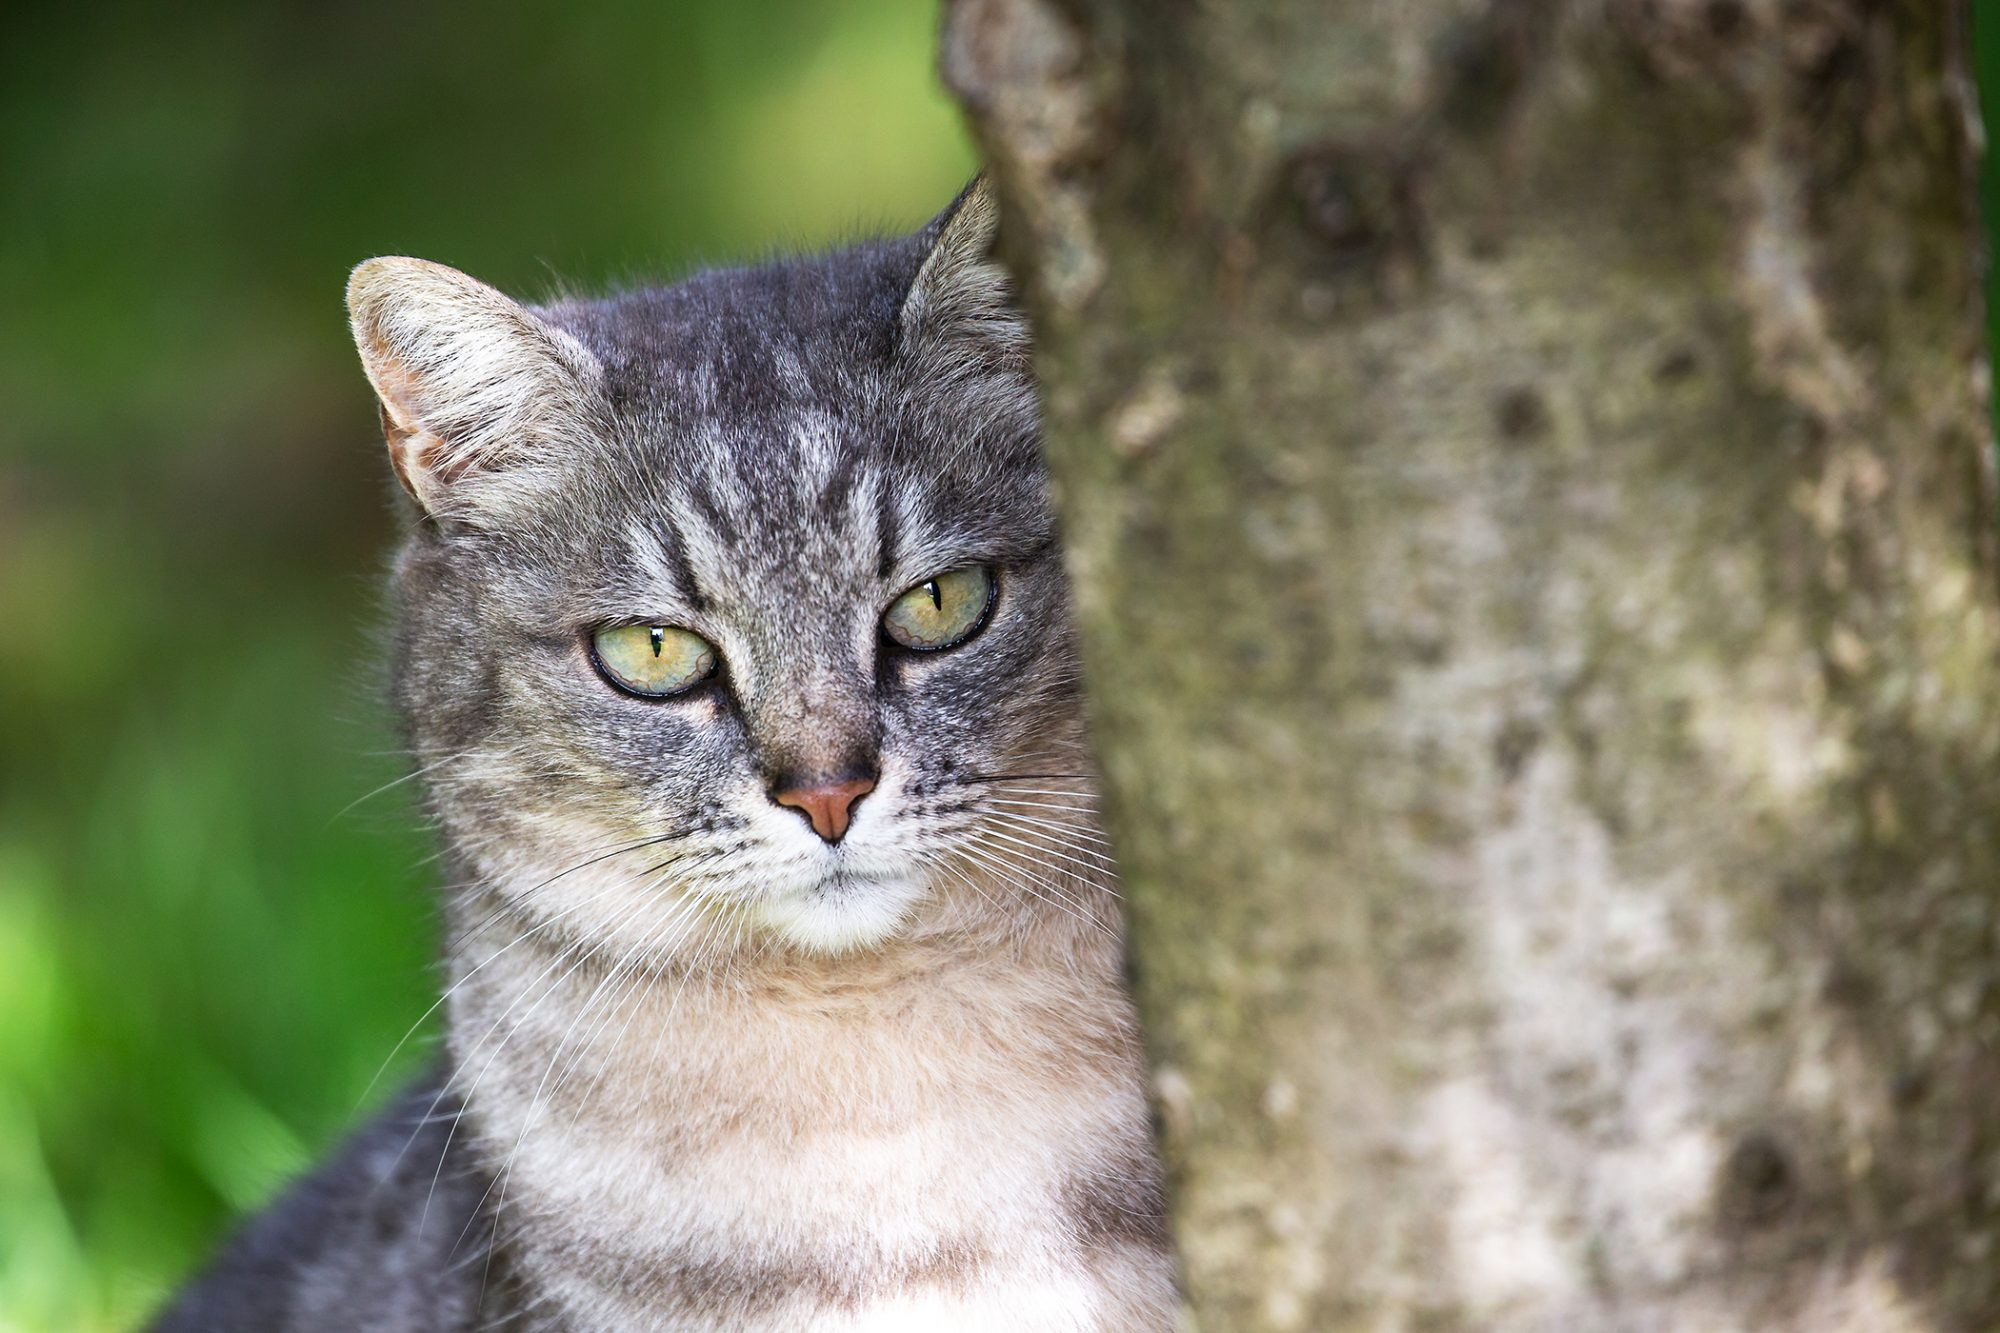 Grey striped cat sits behind tree trunk